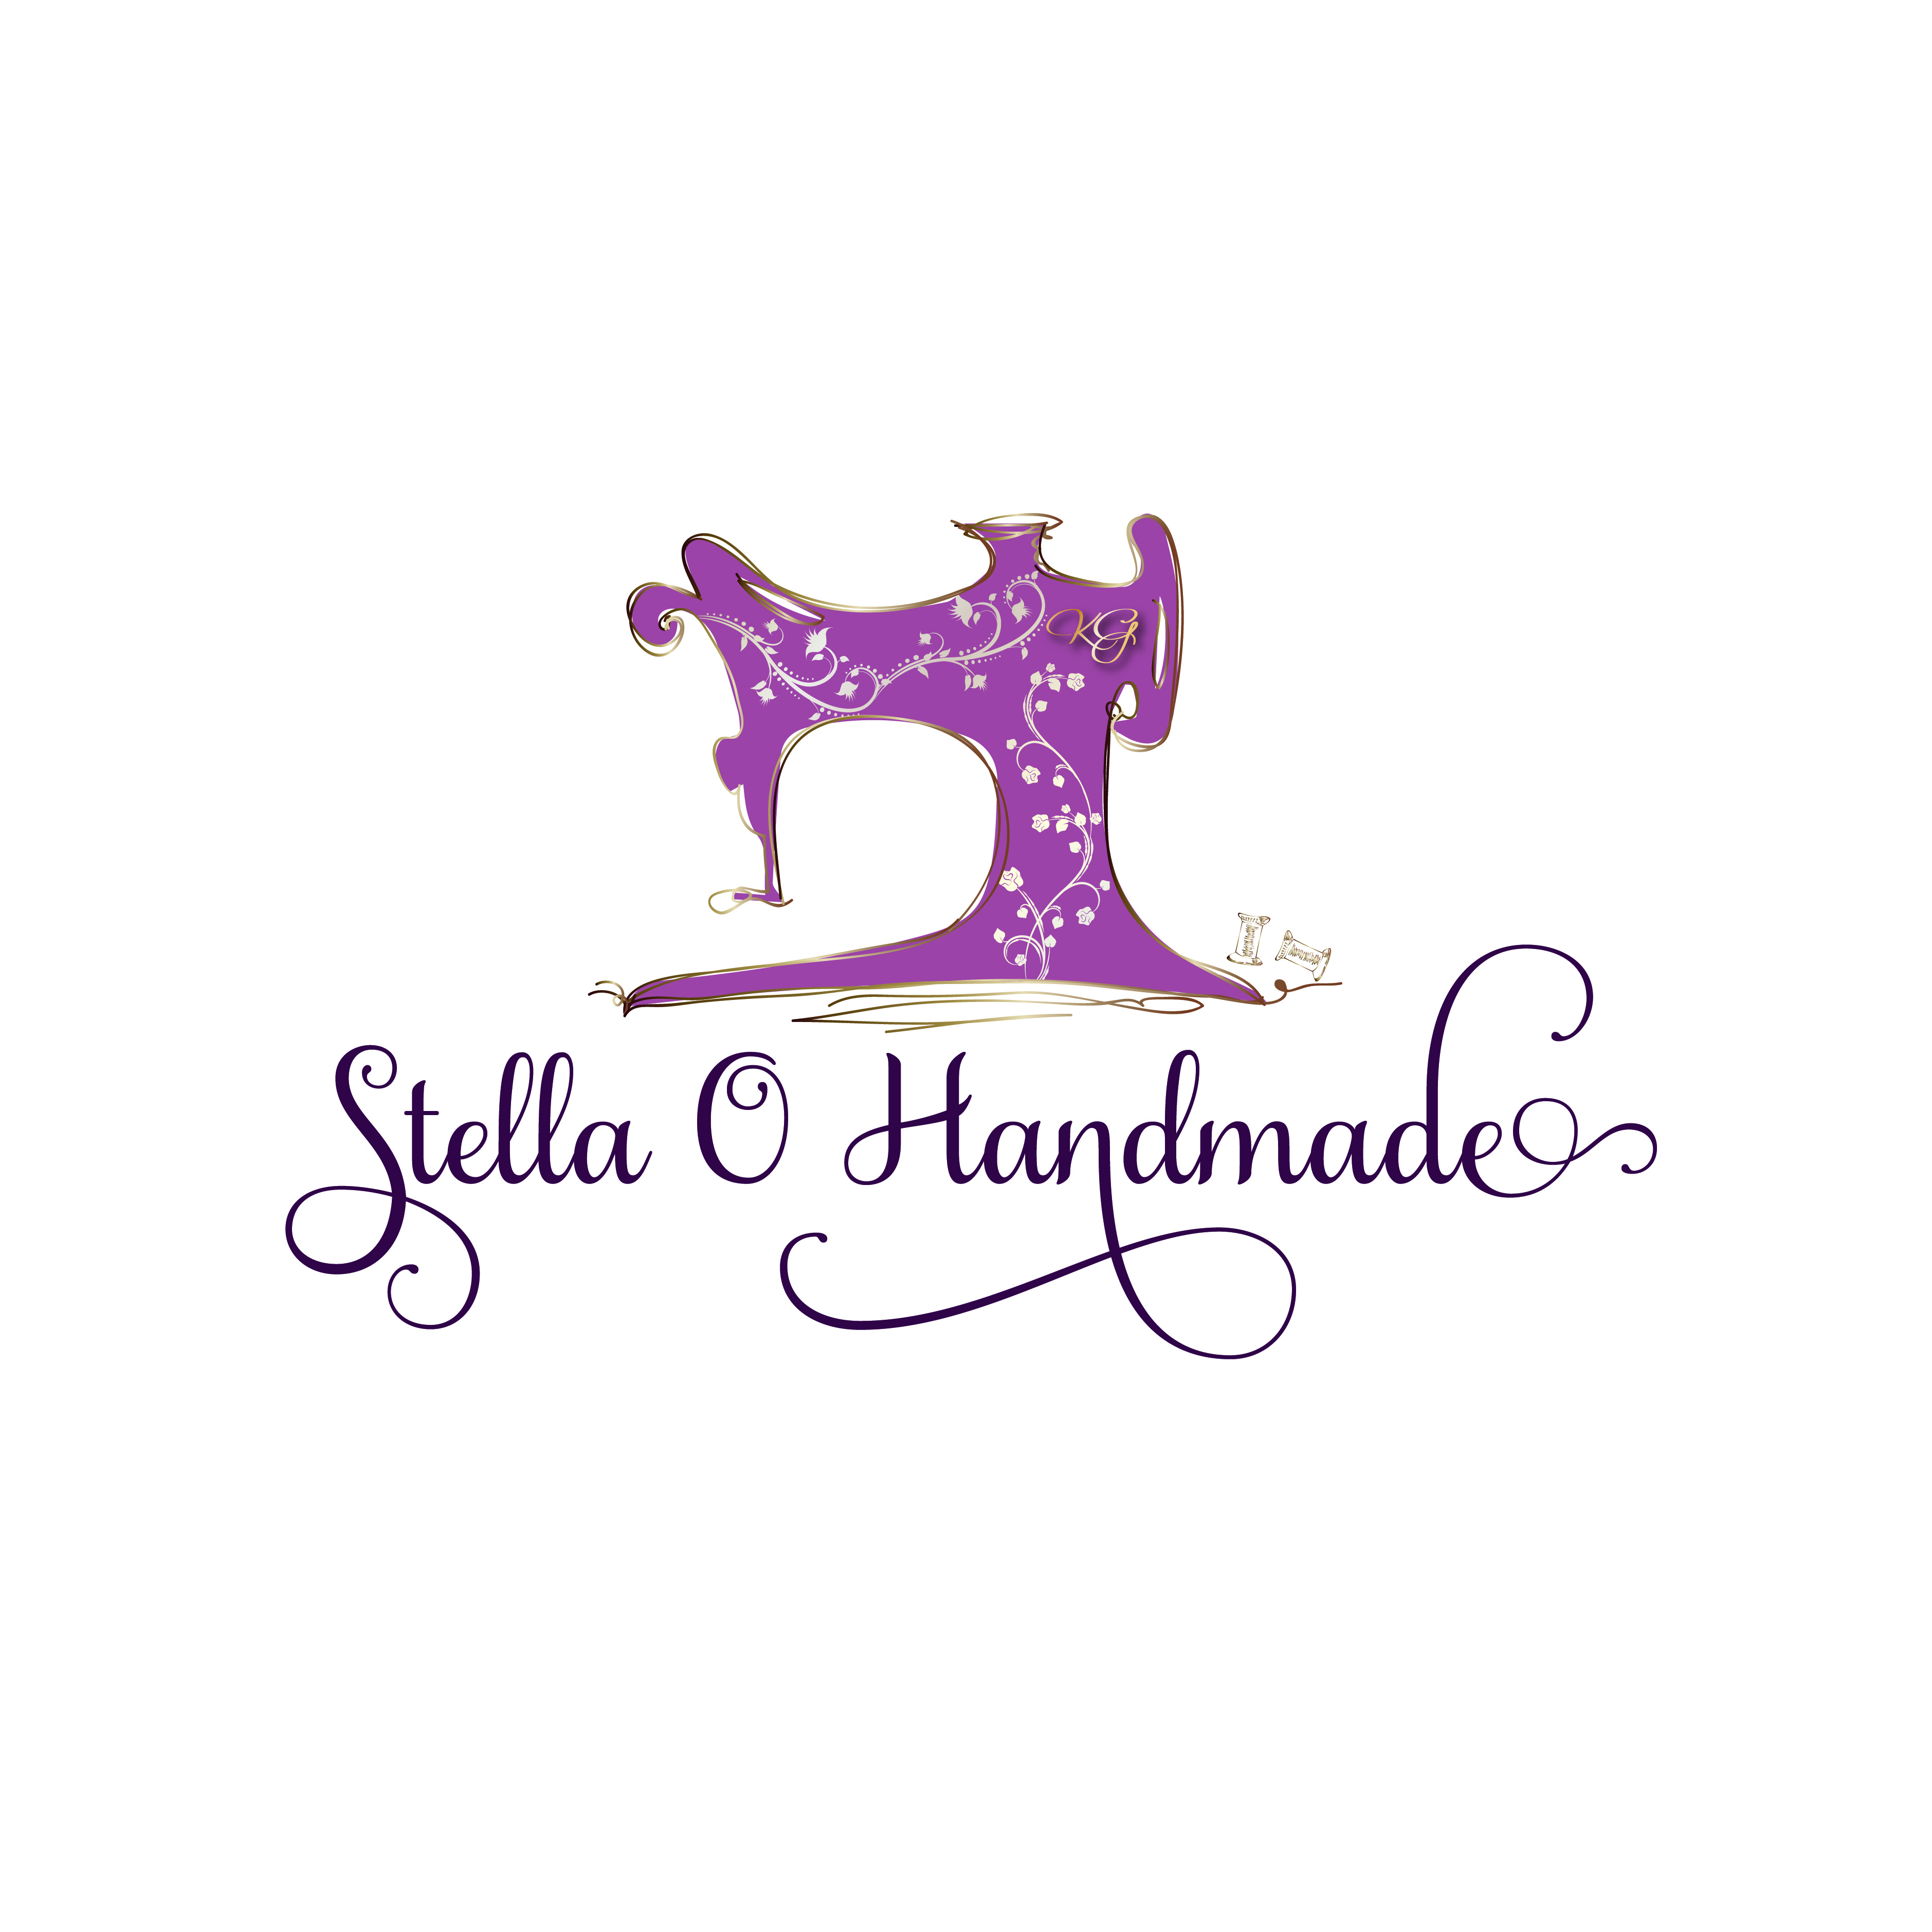 https://www.hand-made.com.au/StellaOHandmade